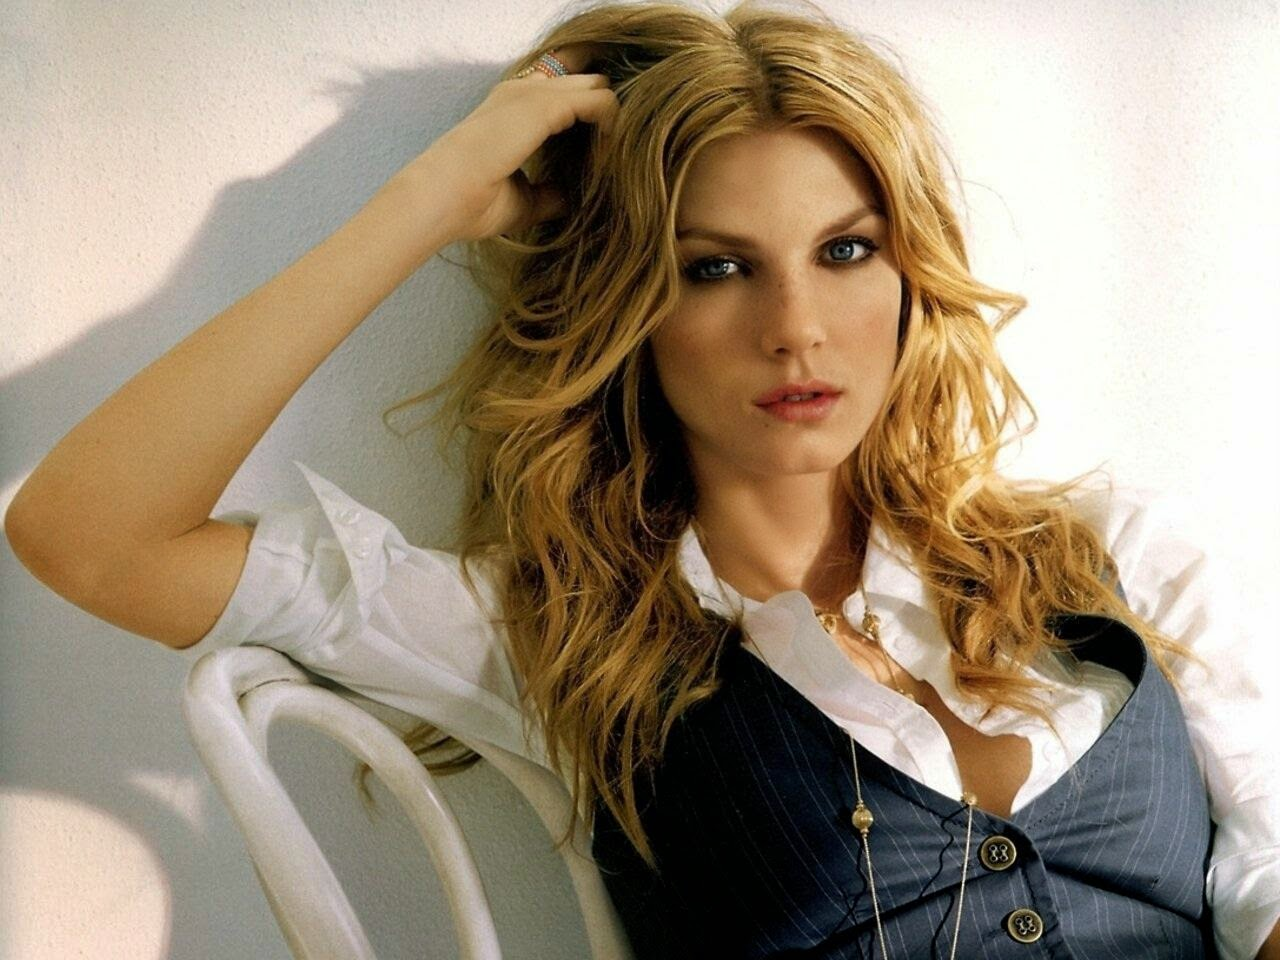 Hot Angela Lindvall nudes (48 foto and video), Ass, Cleavage, Boobs, underwear 2019